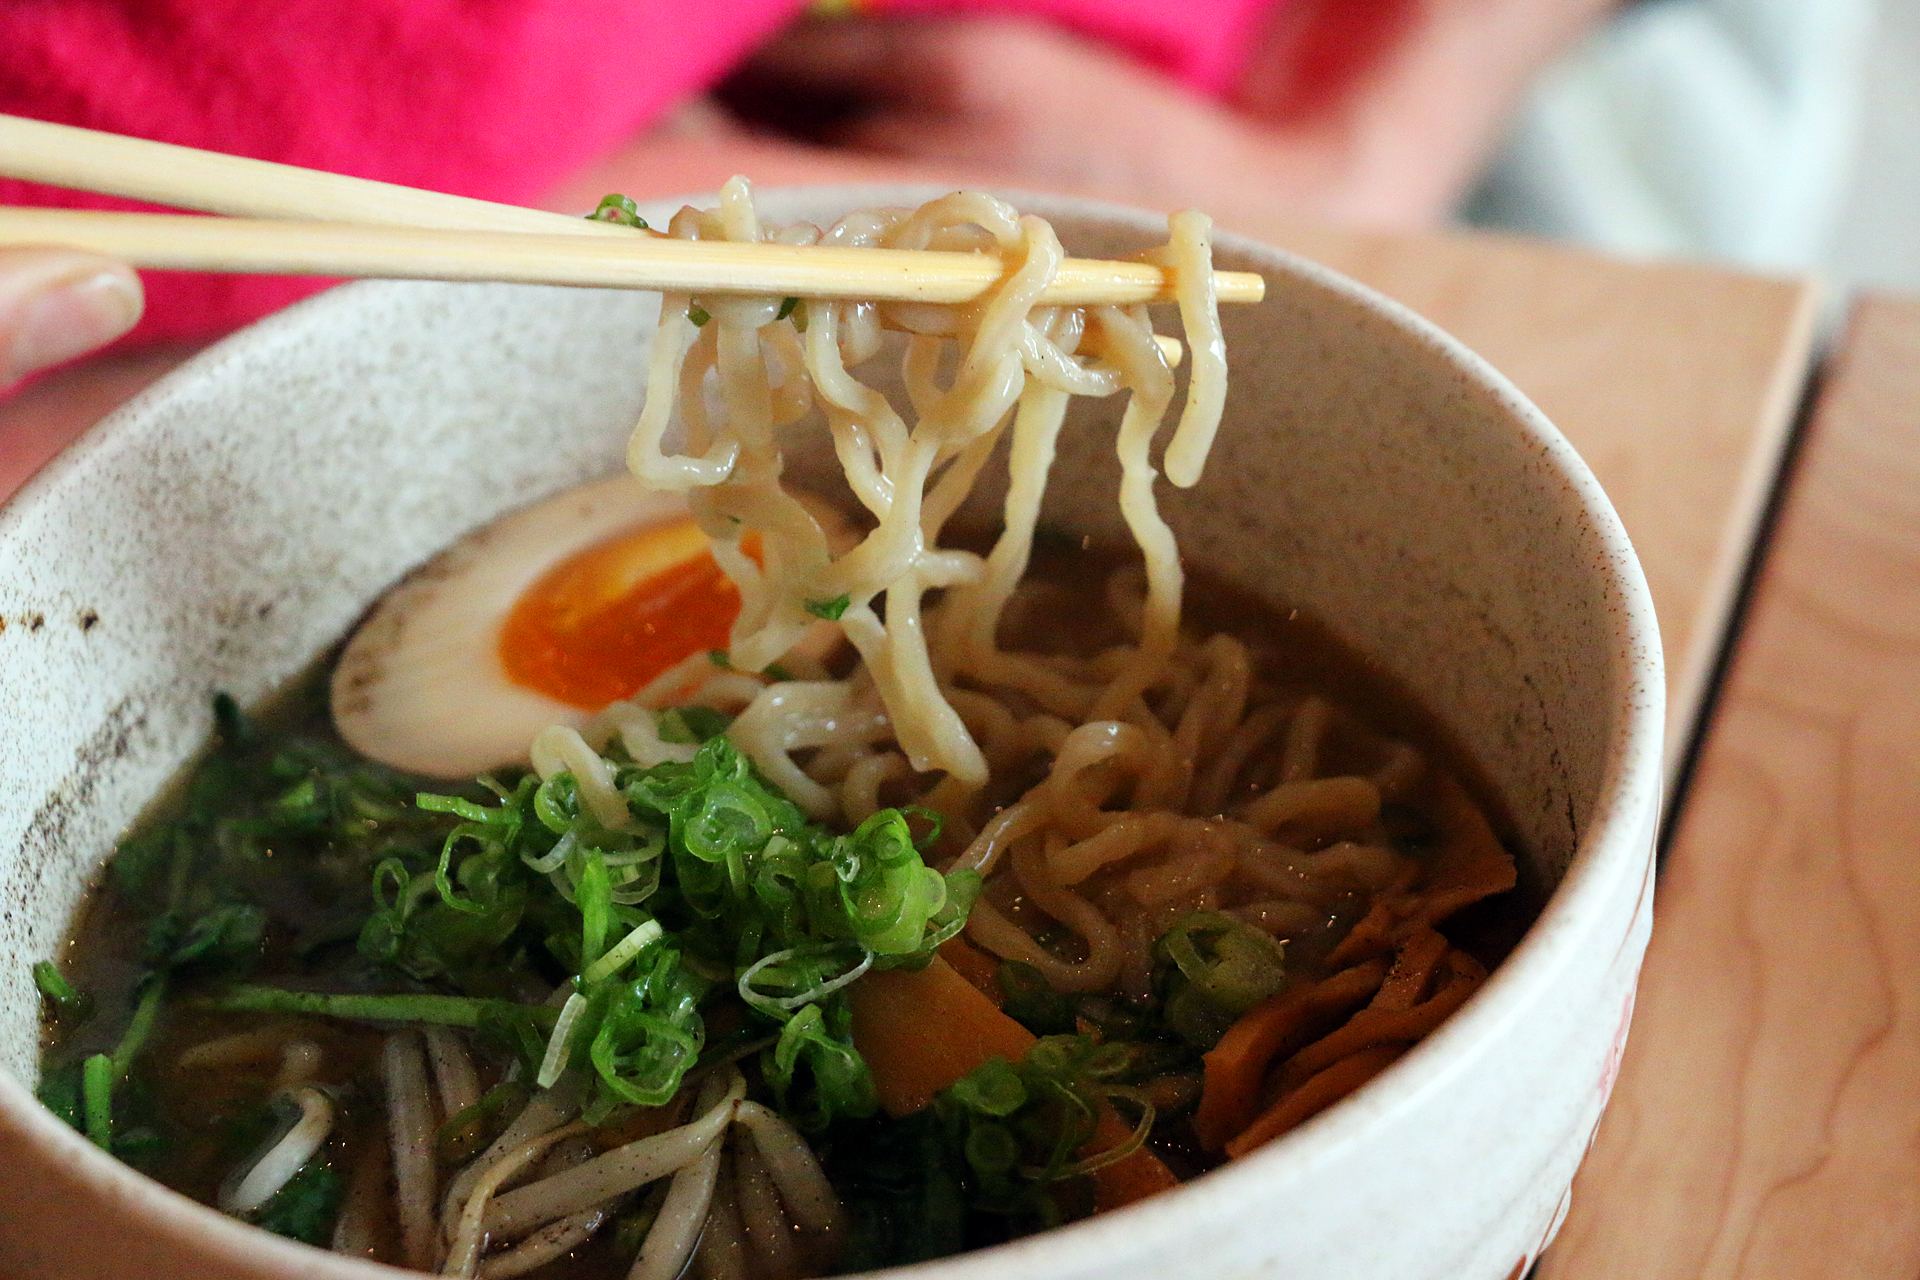 The addictive homemade noodles in the Miso ramen.